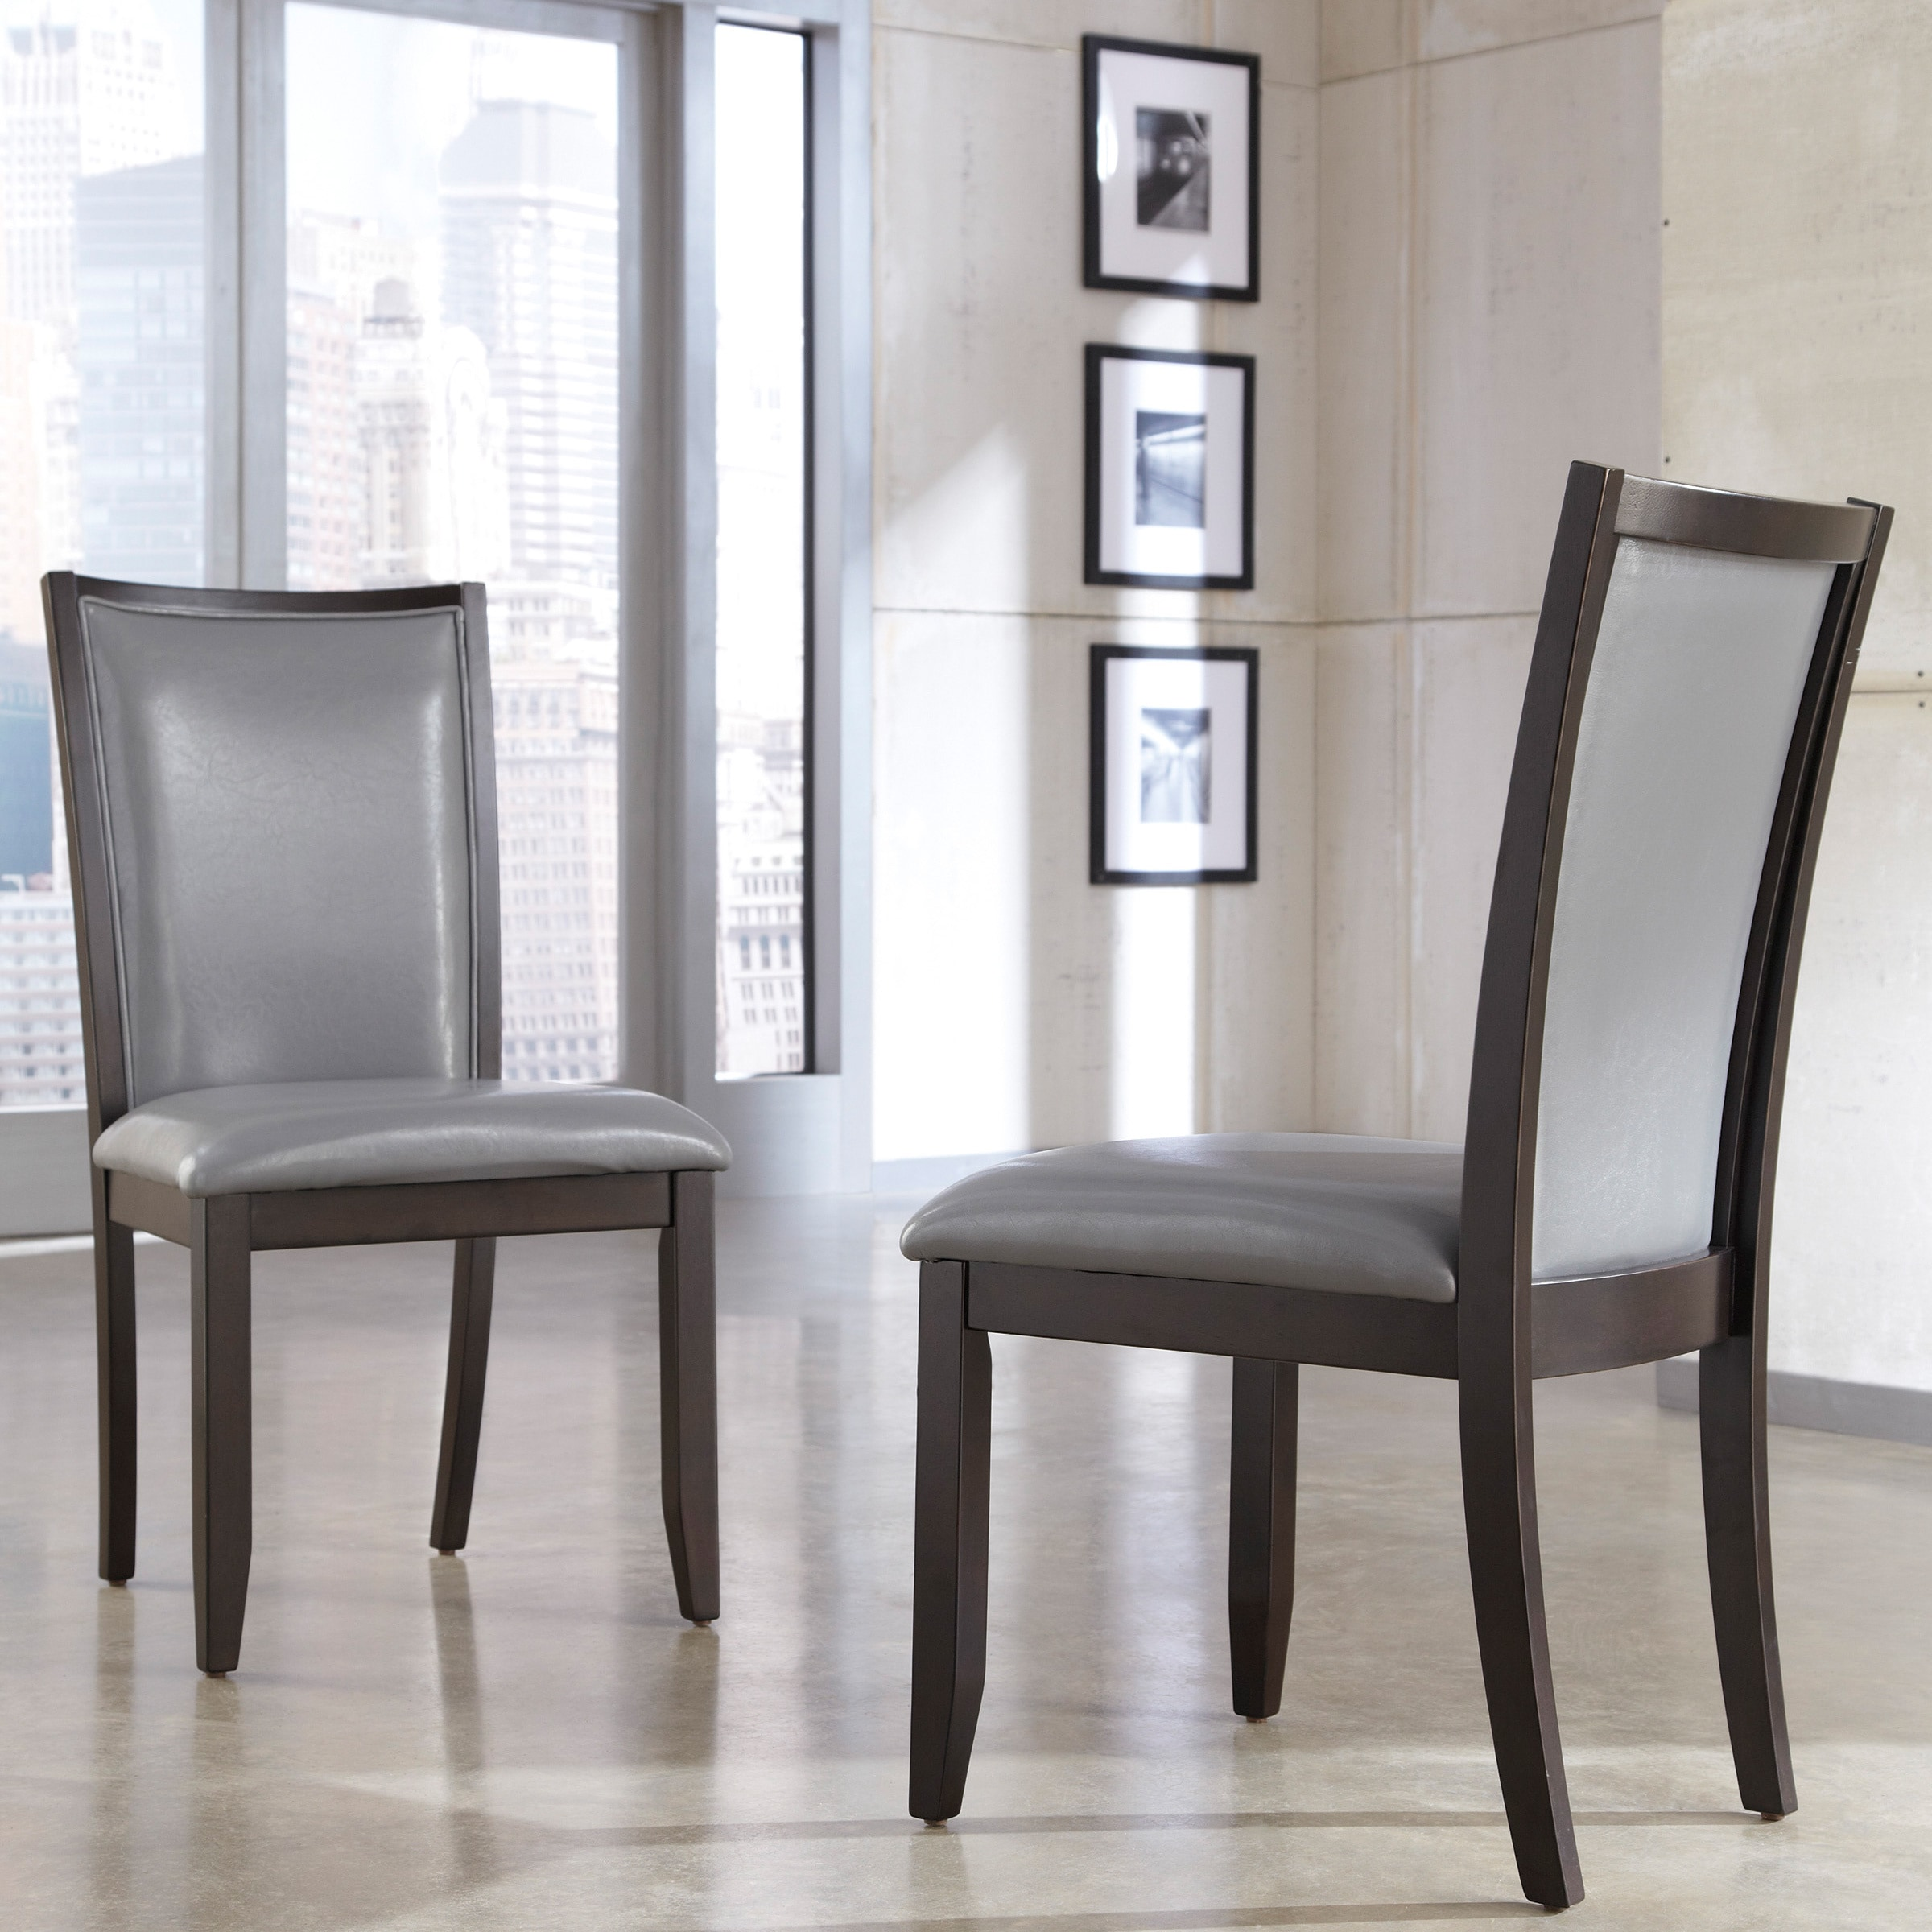 grey dining chairs fishing chair spare legs shop signature designs by ashley trishelle upholstered set of 2 free shipping today overstock com 9217091